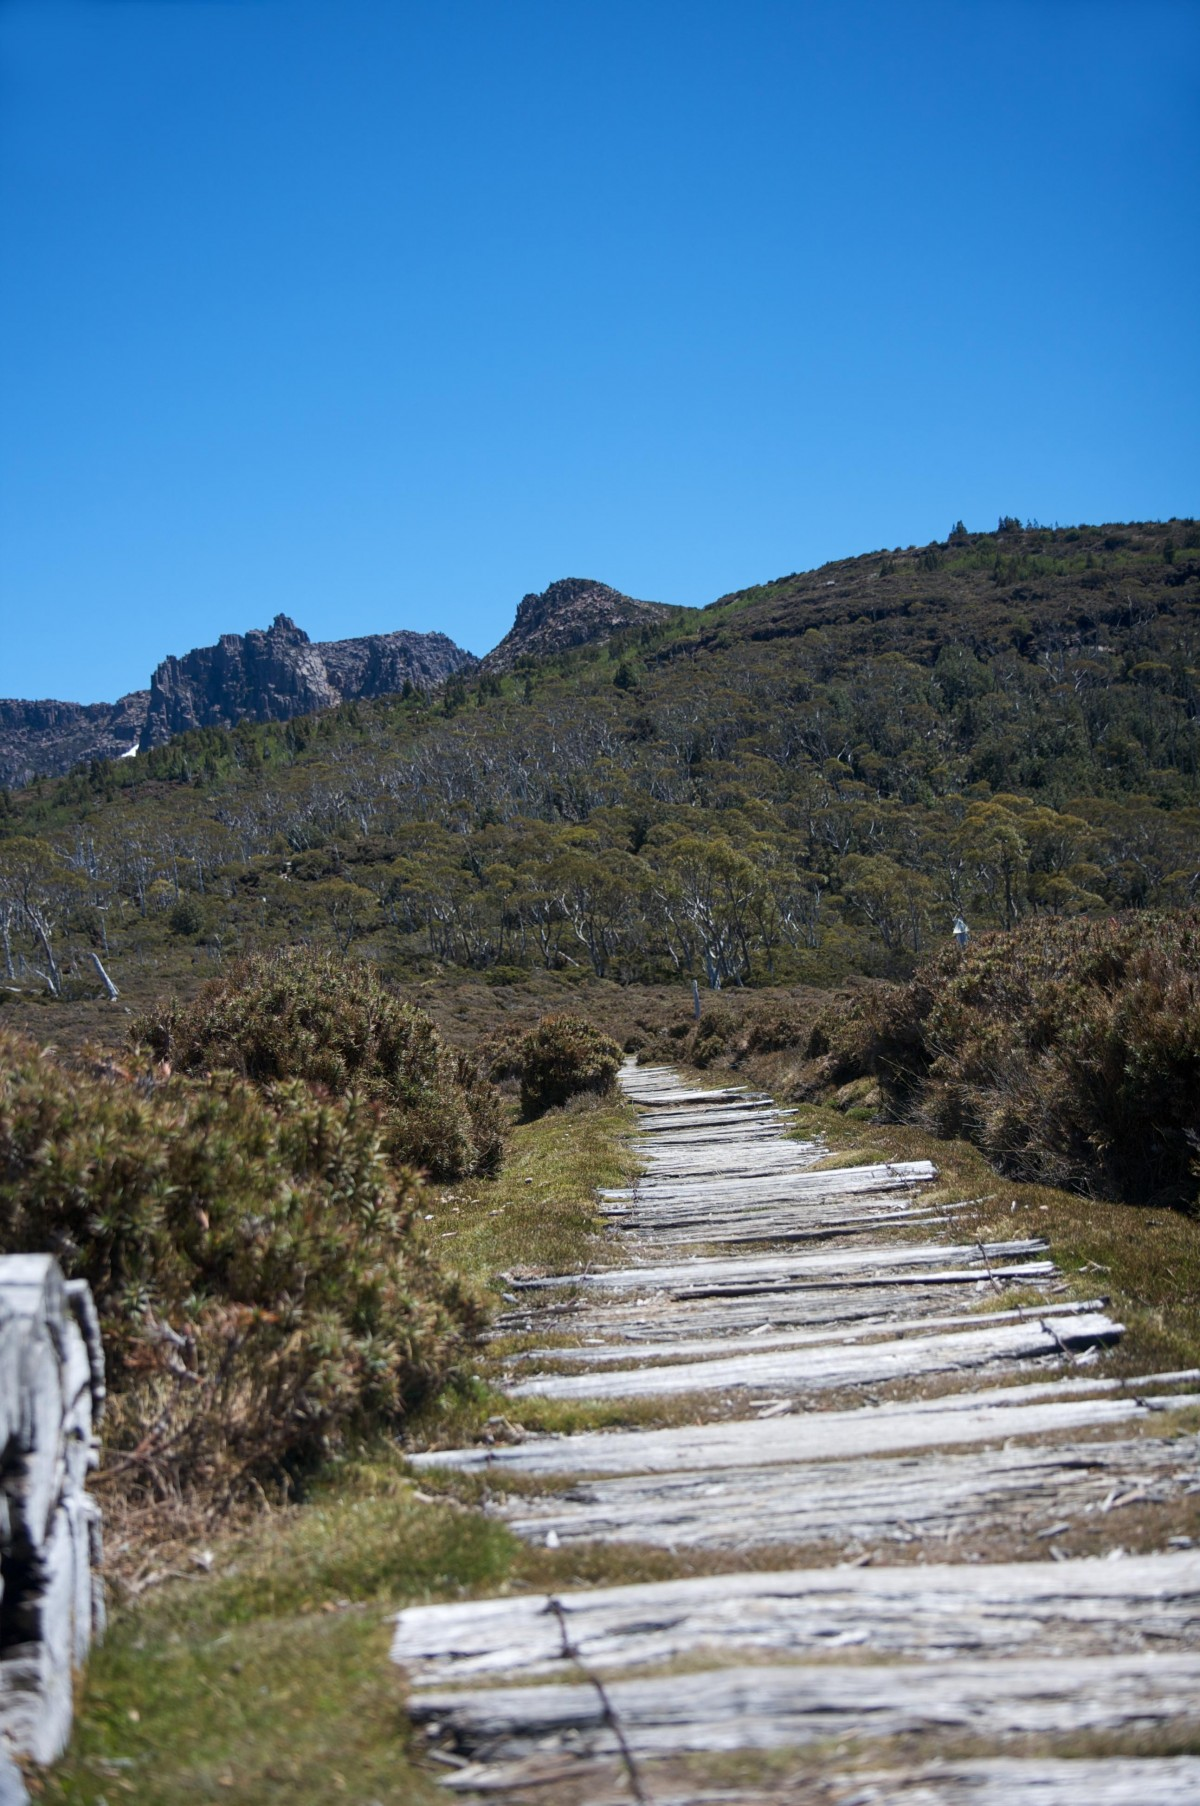 Queenstown Australia  city images : Overland Track Queenstown, Australia | TouristEye